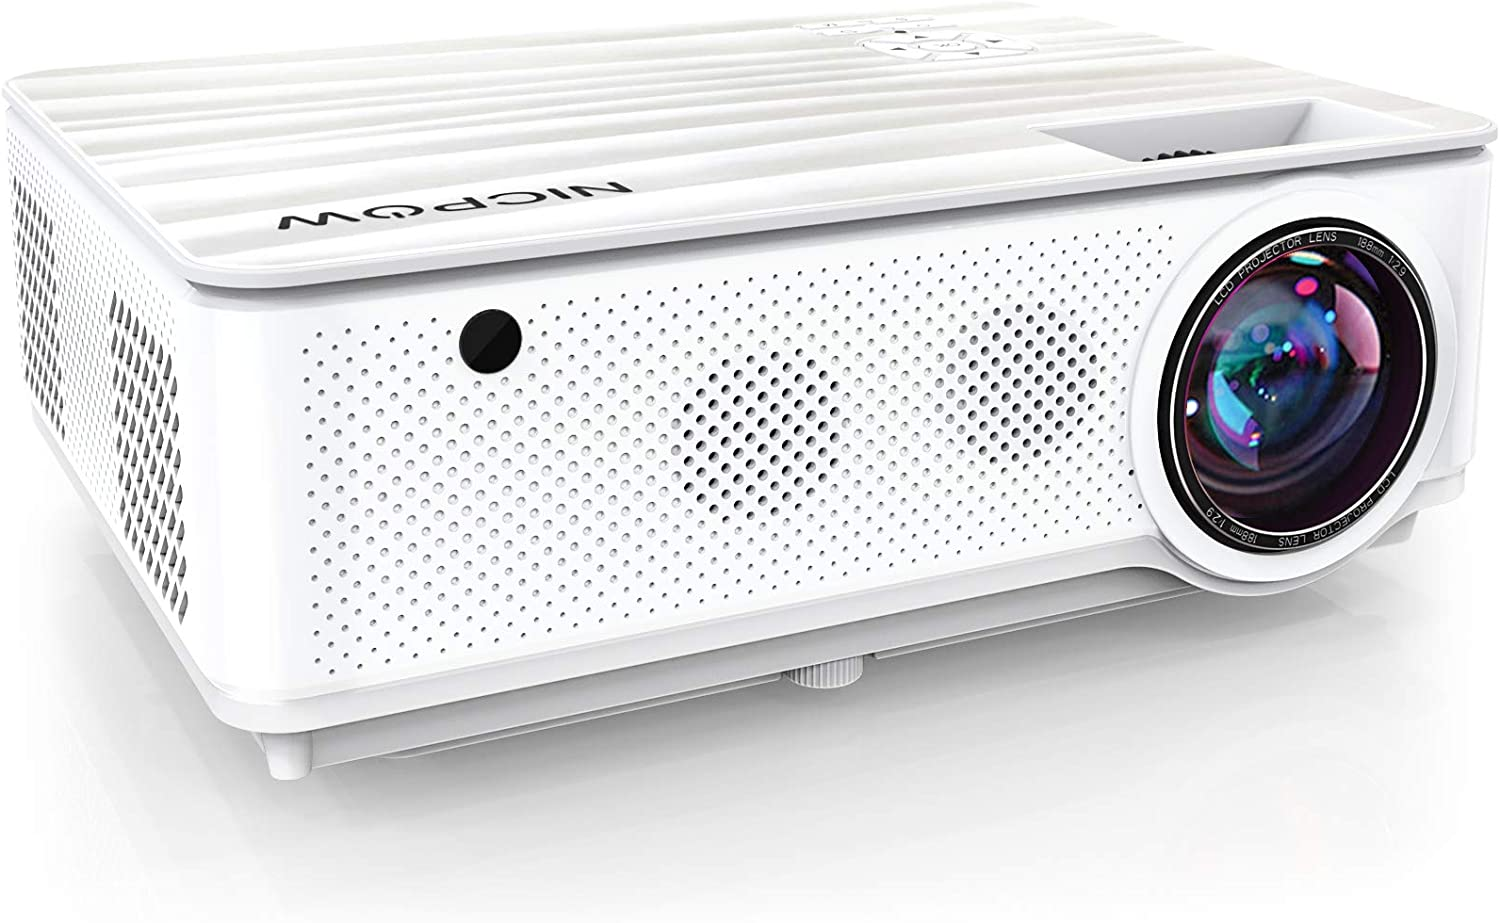 """Native 1080P Projector,NICPOW 7200L Full HD Video Projector,±40° 4D Keystone Correction,Outdoor Movie Projector with Max 300"""" Display&50% Zoom,Compatible with TV Stick, PS4, HDMI,VGA,AV and USB"""